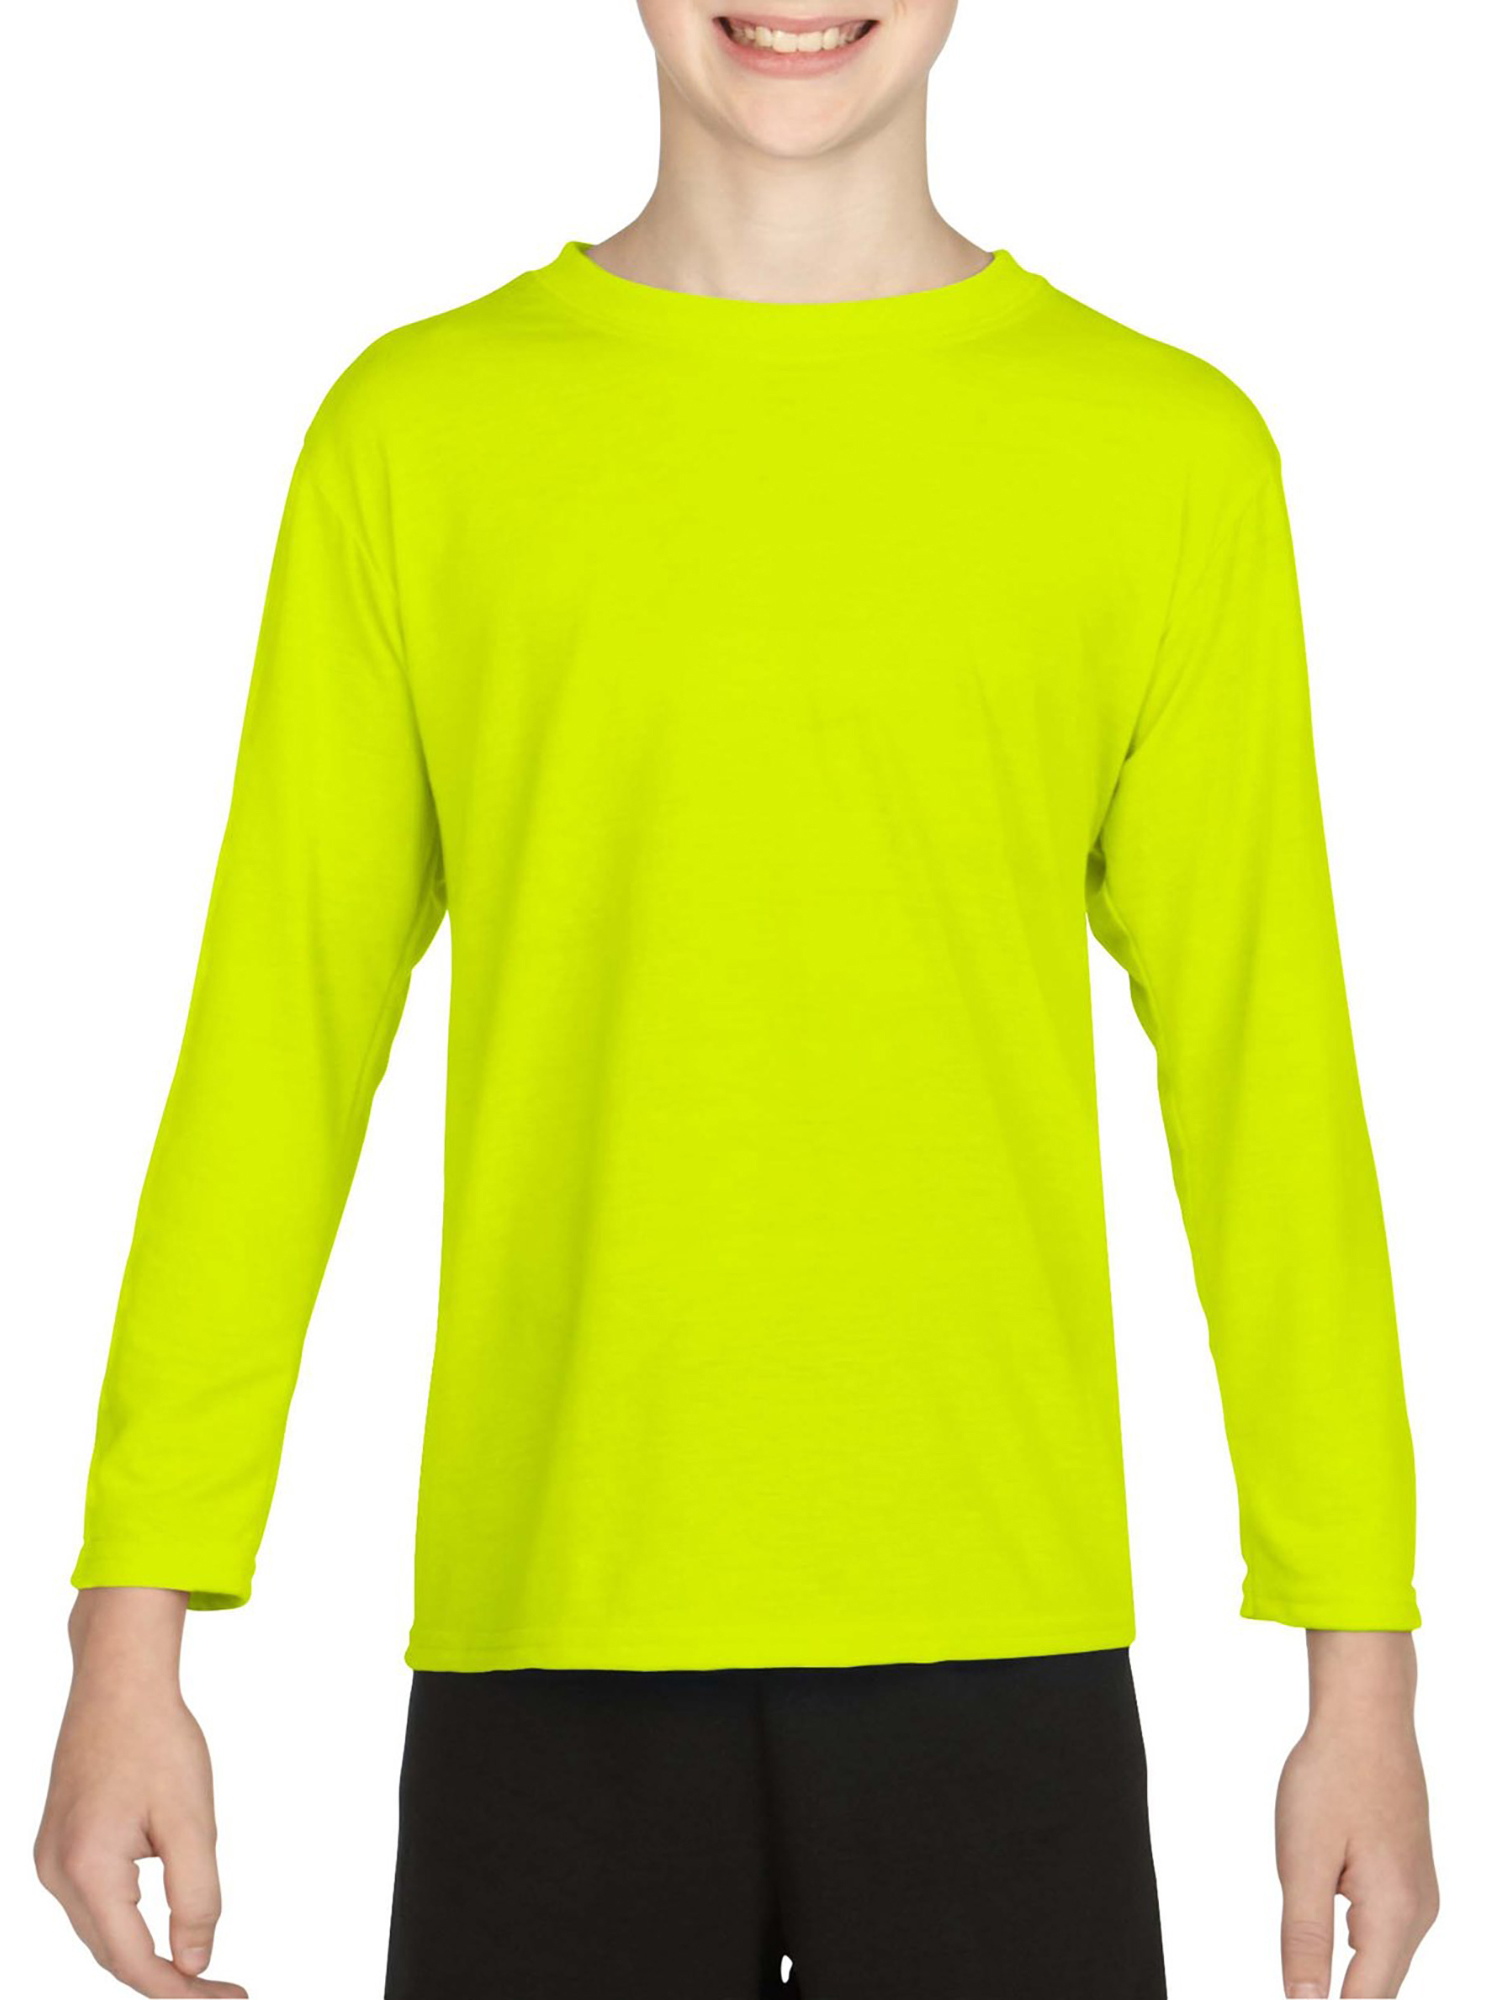 Gildan AquaFX Performance Kids Long Sleeve T-Shirt